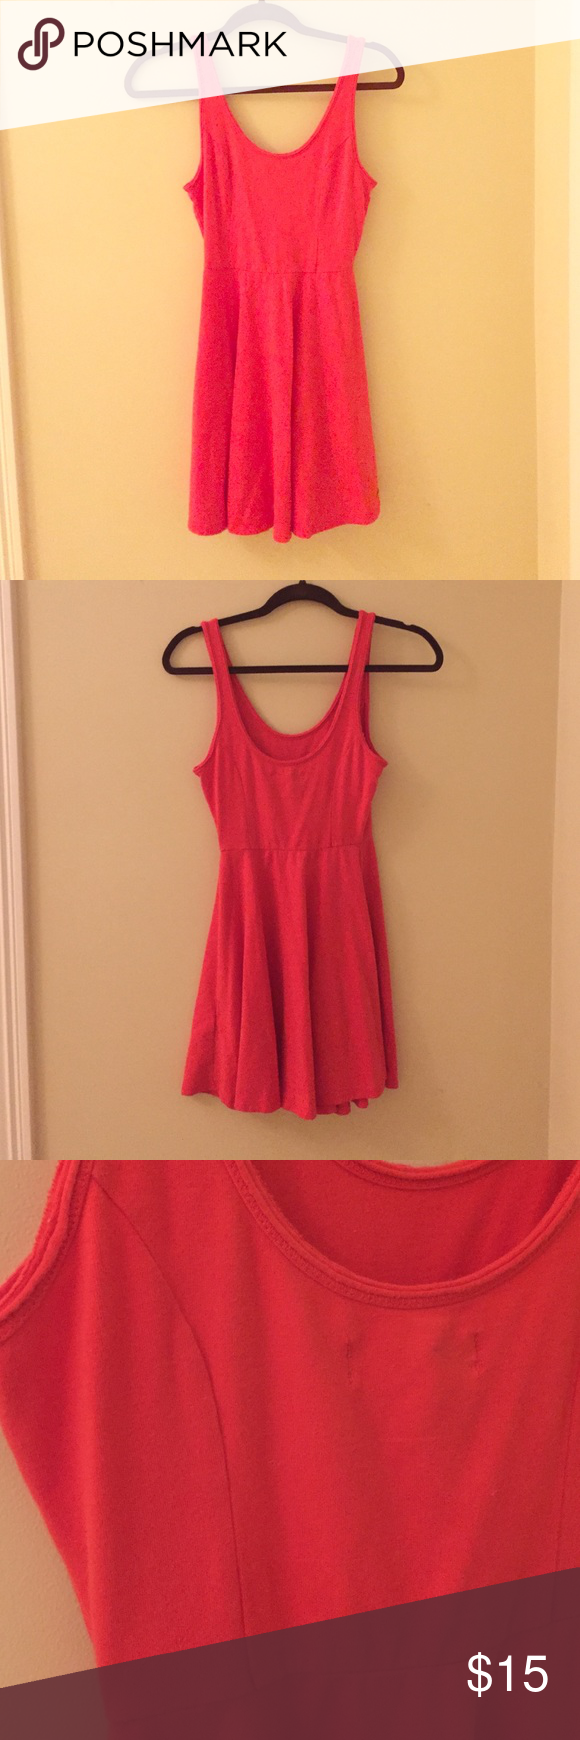 Hollister Dress Used once, cotton, very stretchy, orangey red, comfortable Hollister Dresses